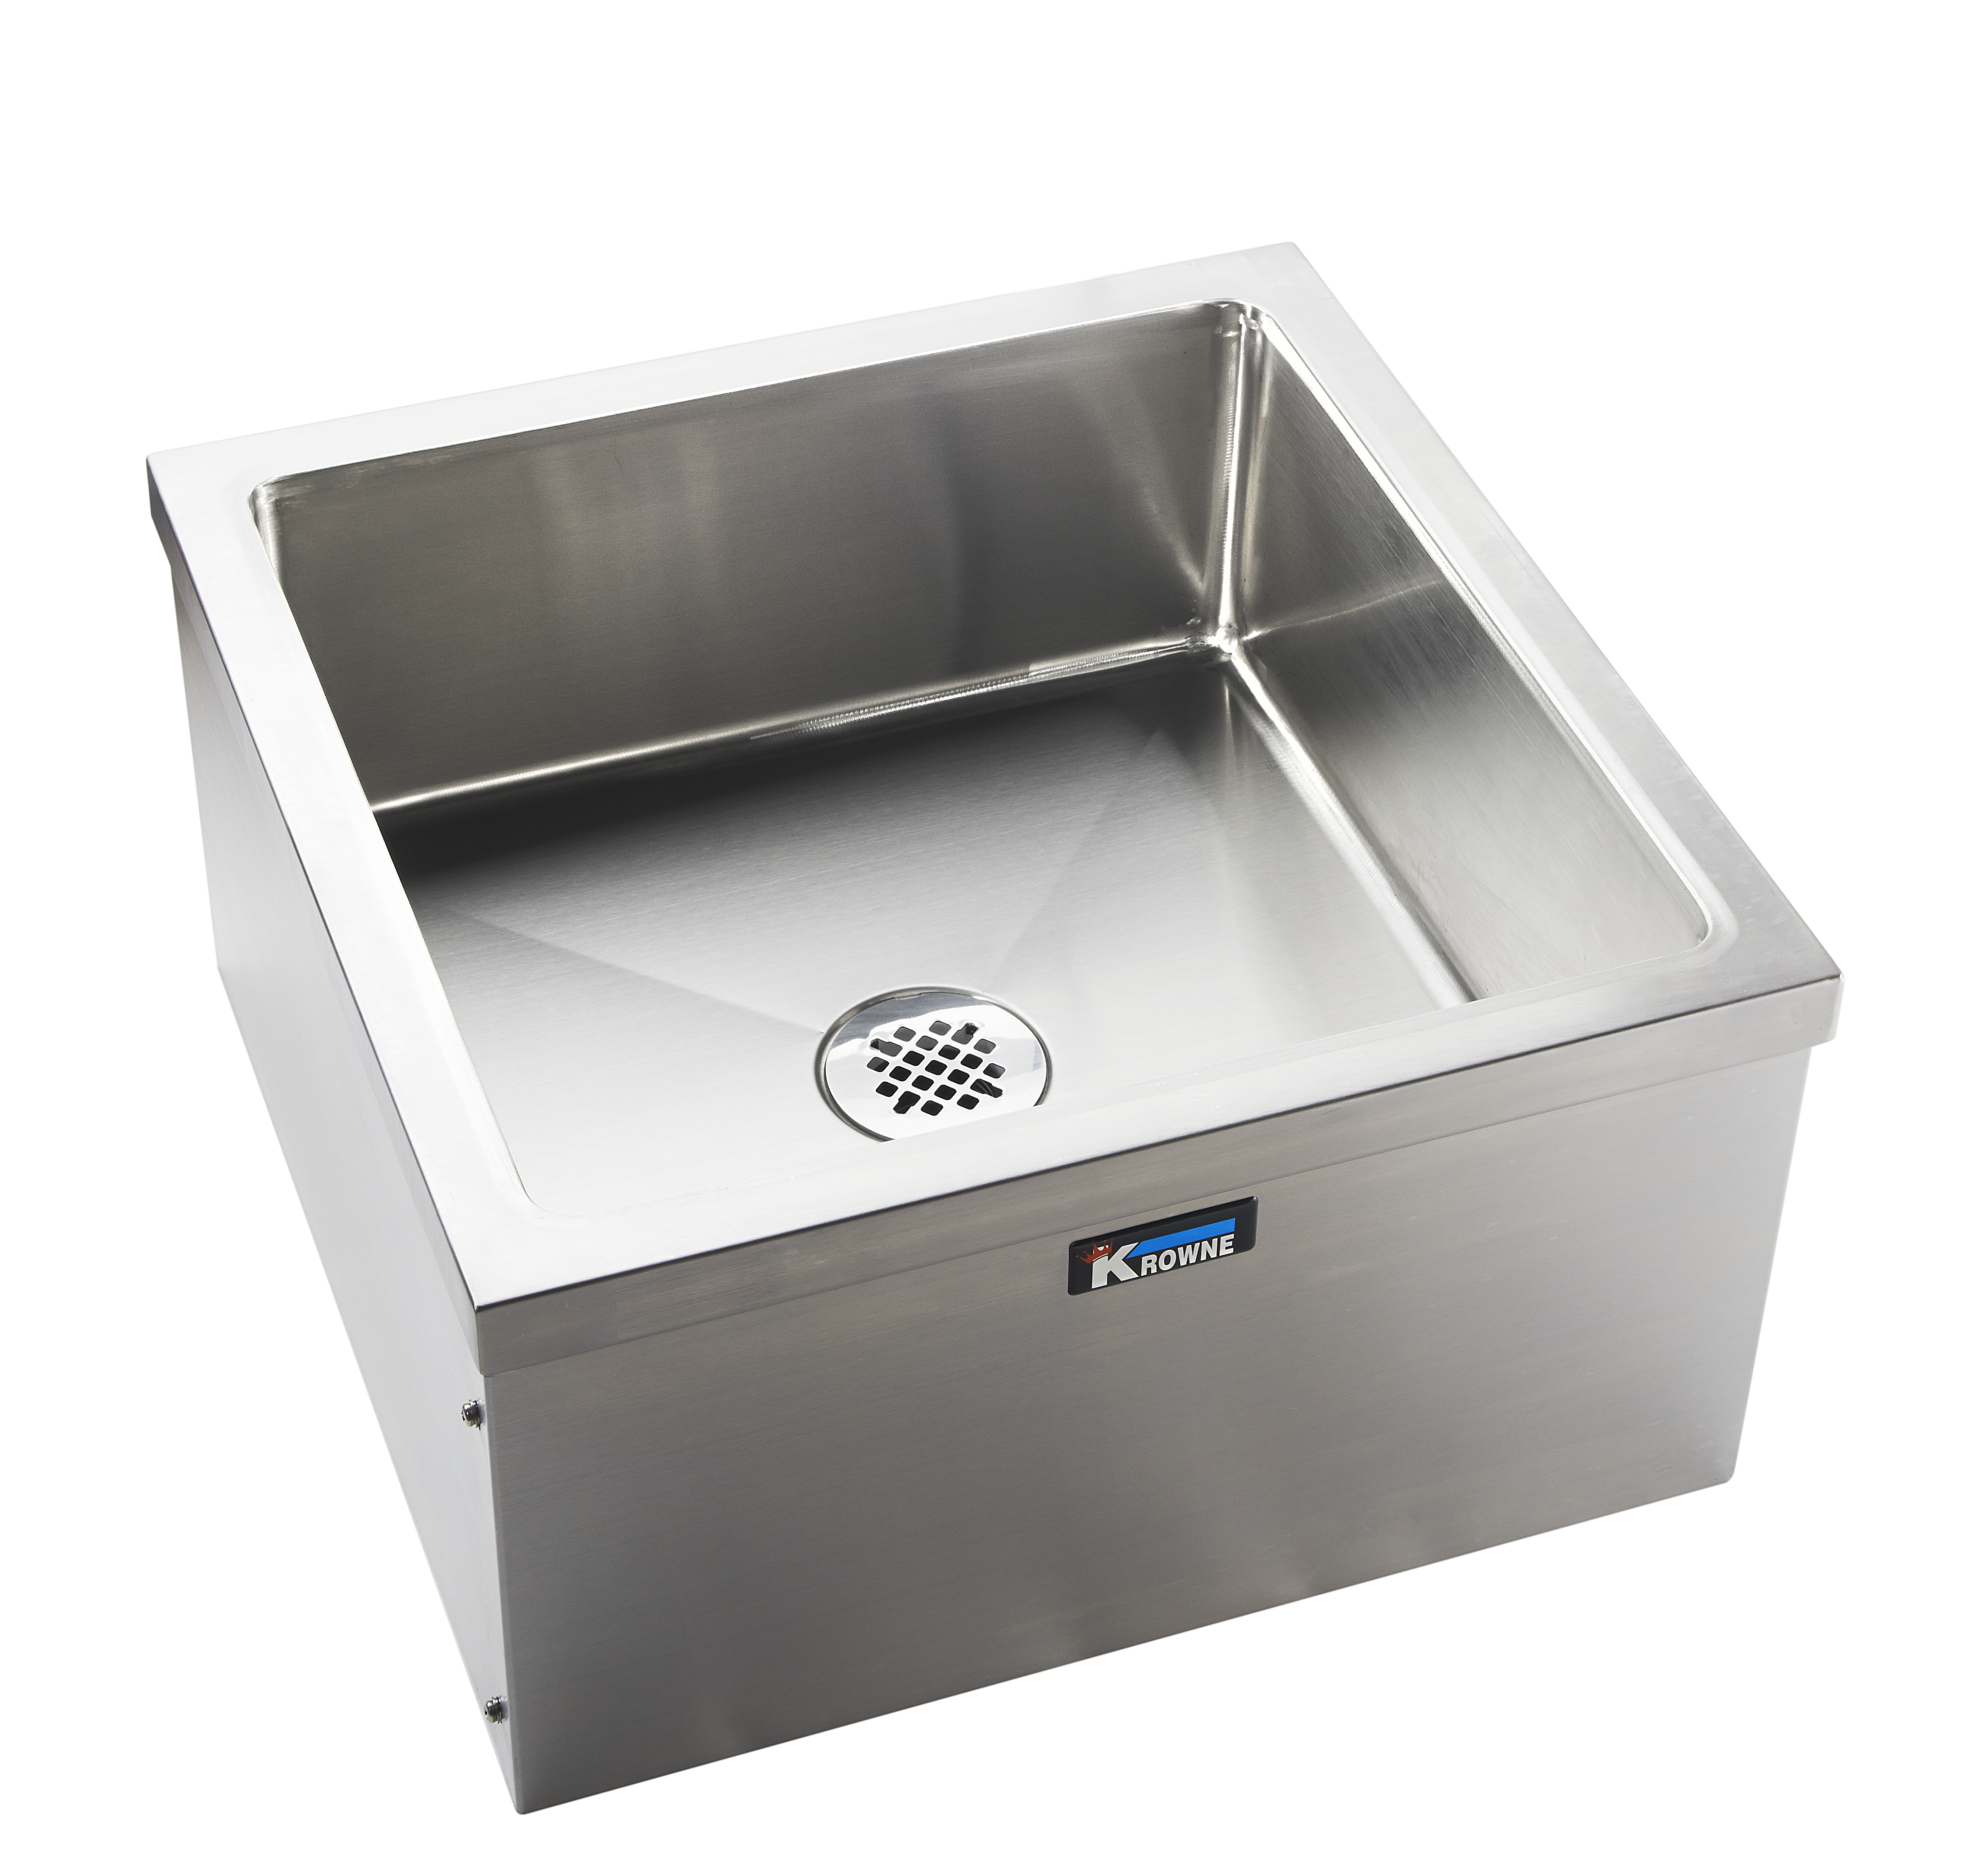 MS-2424 Krowne Metal mop sink